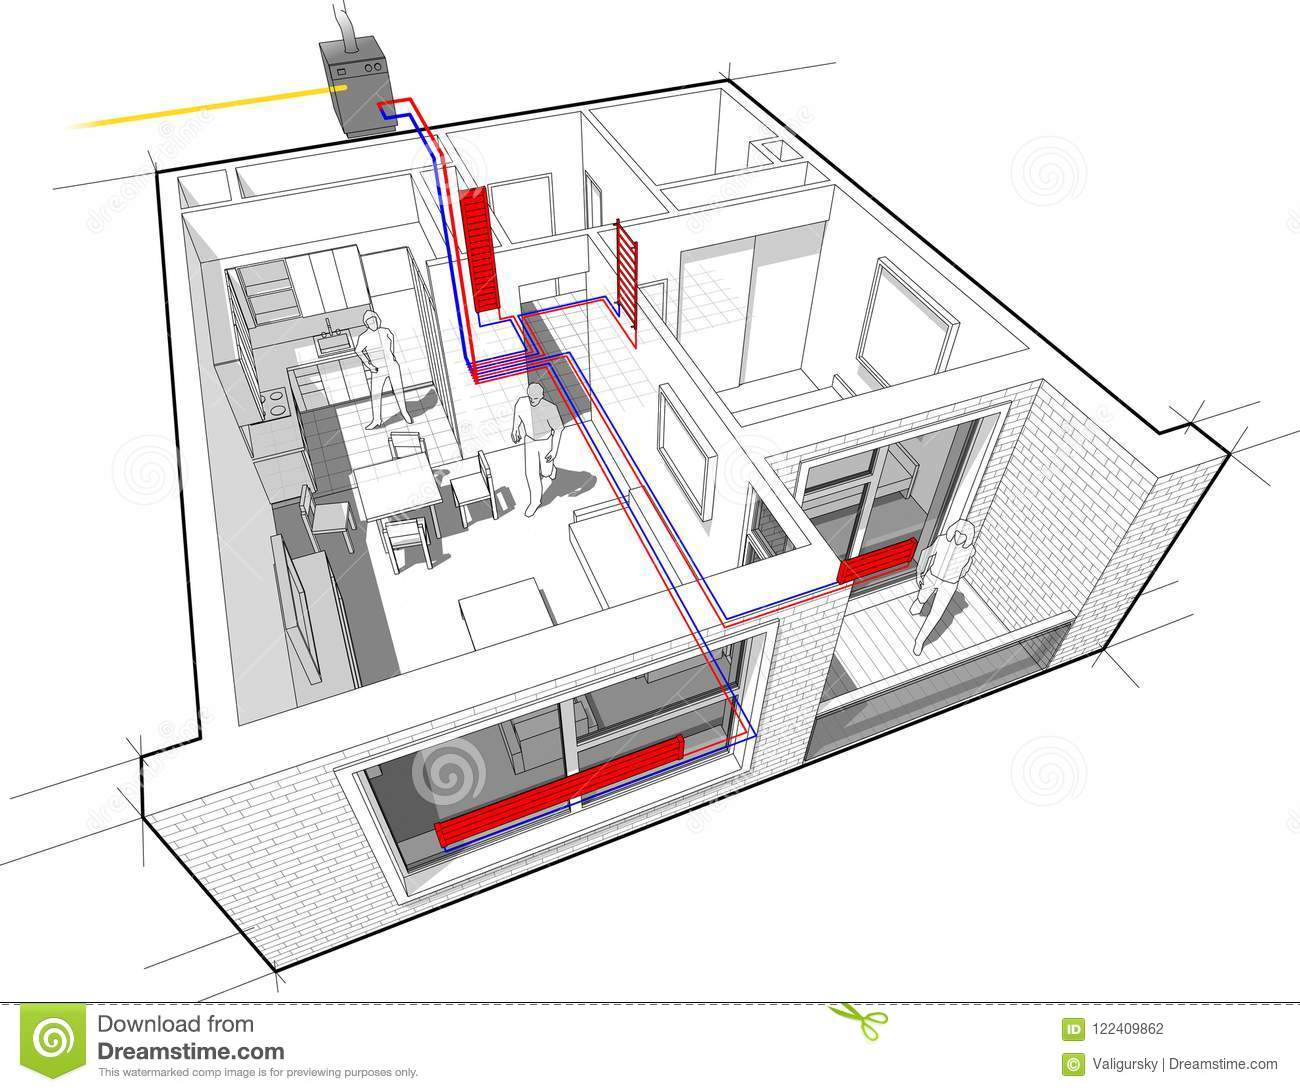 hight resolution of perspective cutaway diagram of a one bedroom apartment completely furnished with hot water radiator heating and gas water boiler as source of energy for